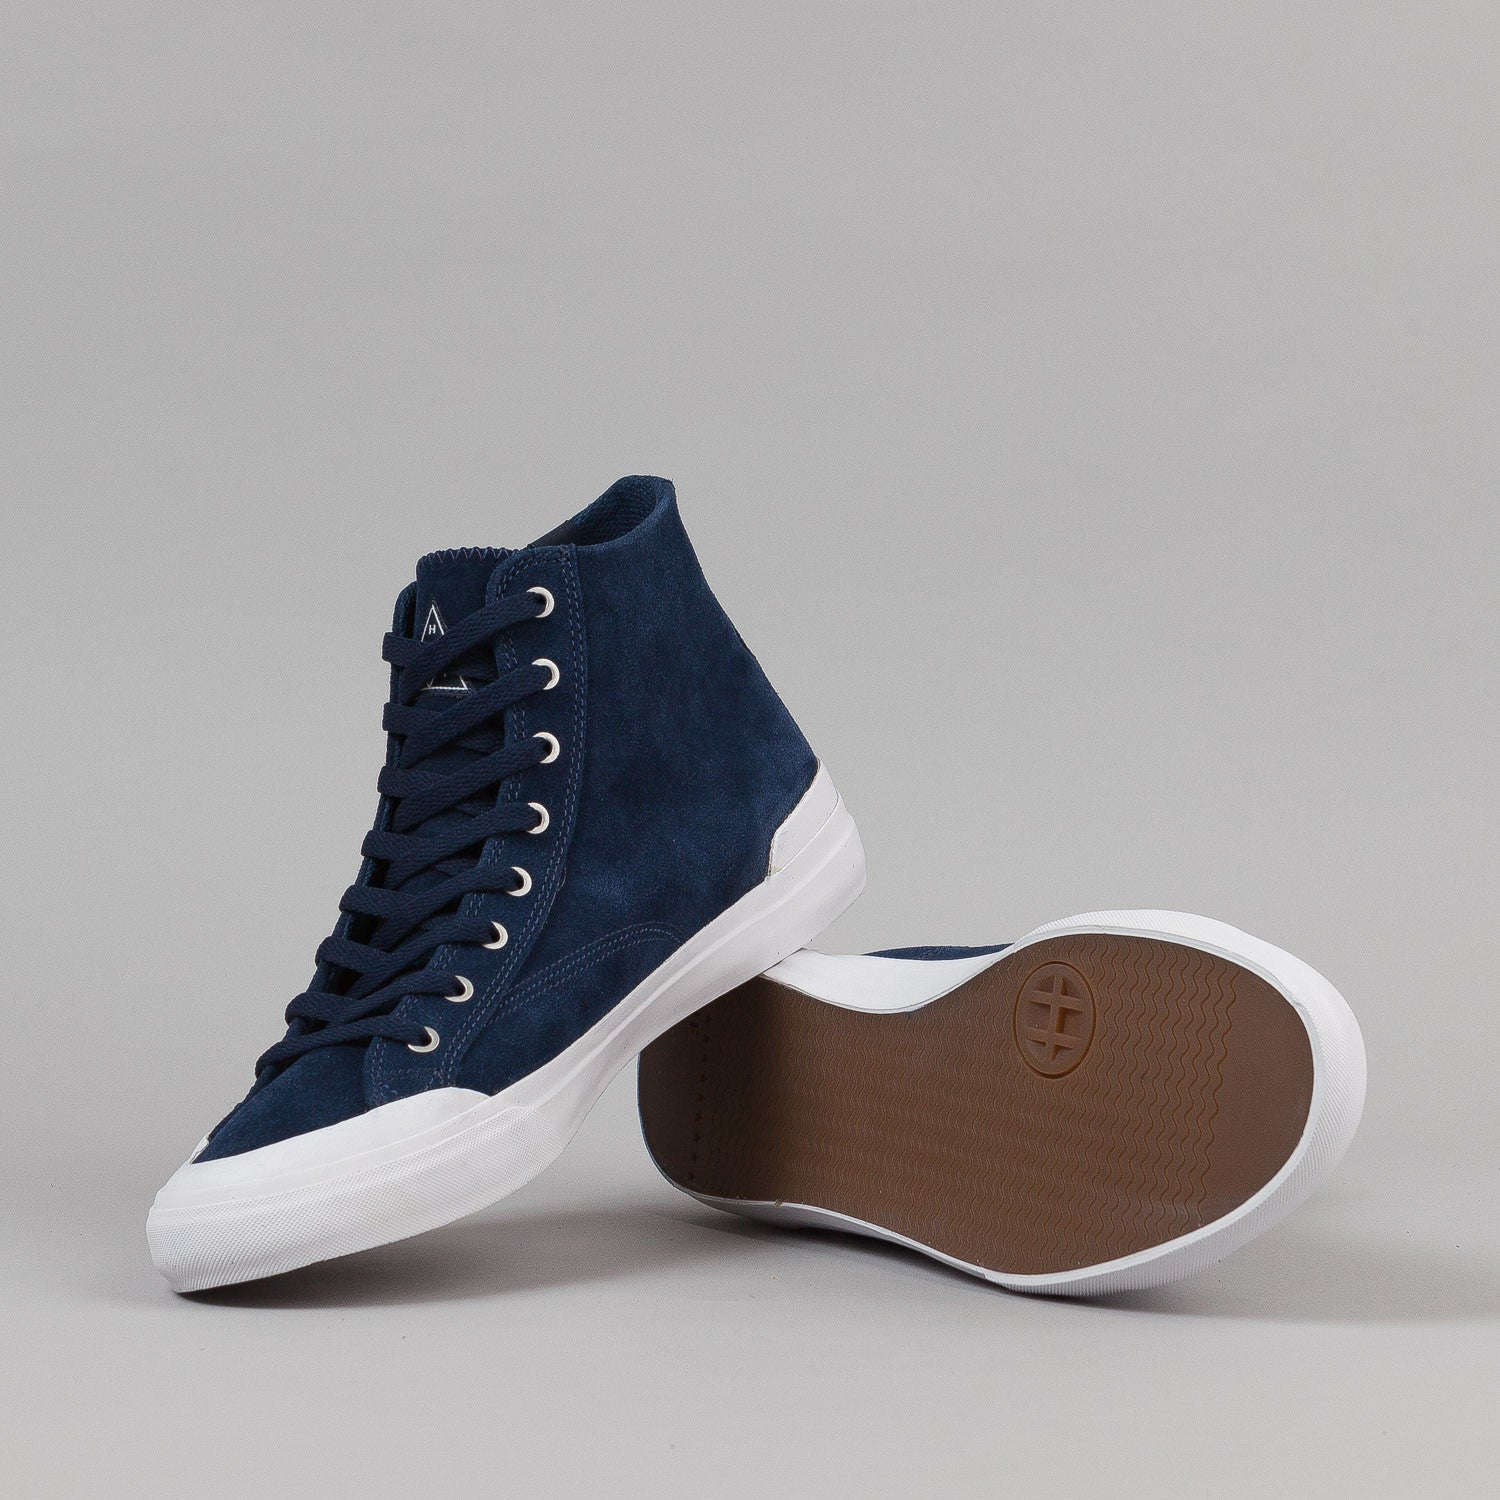 HUF Classic Hi Shoes - Navy / Seaport